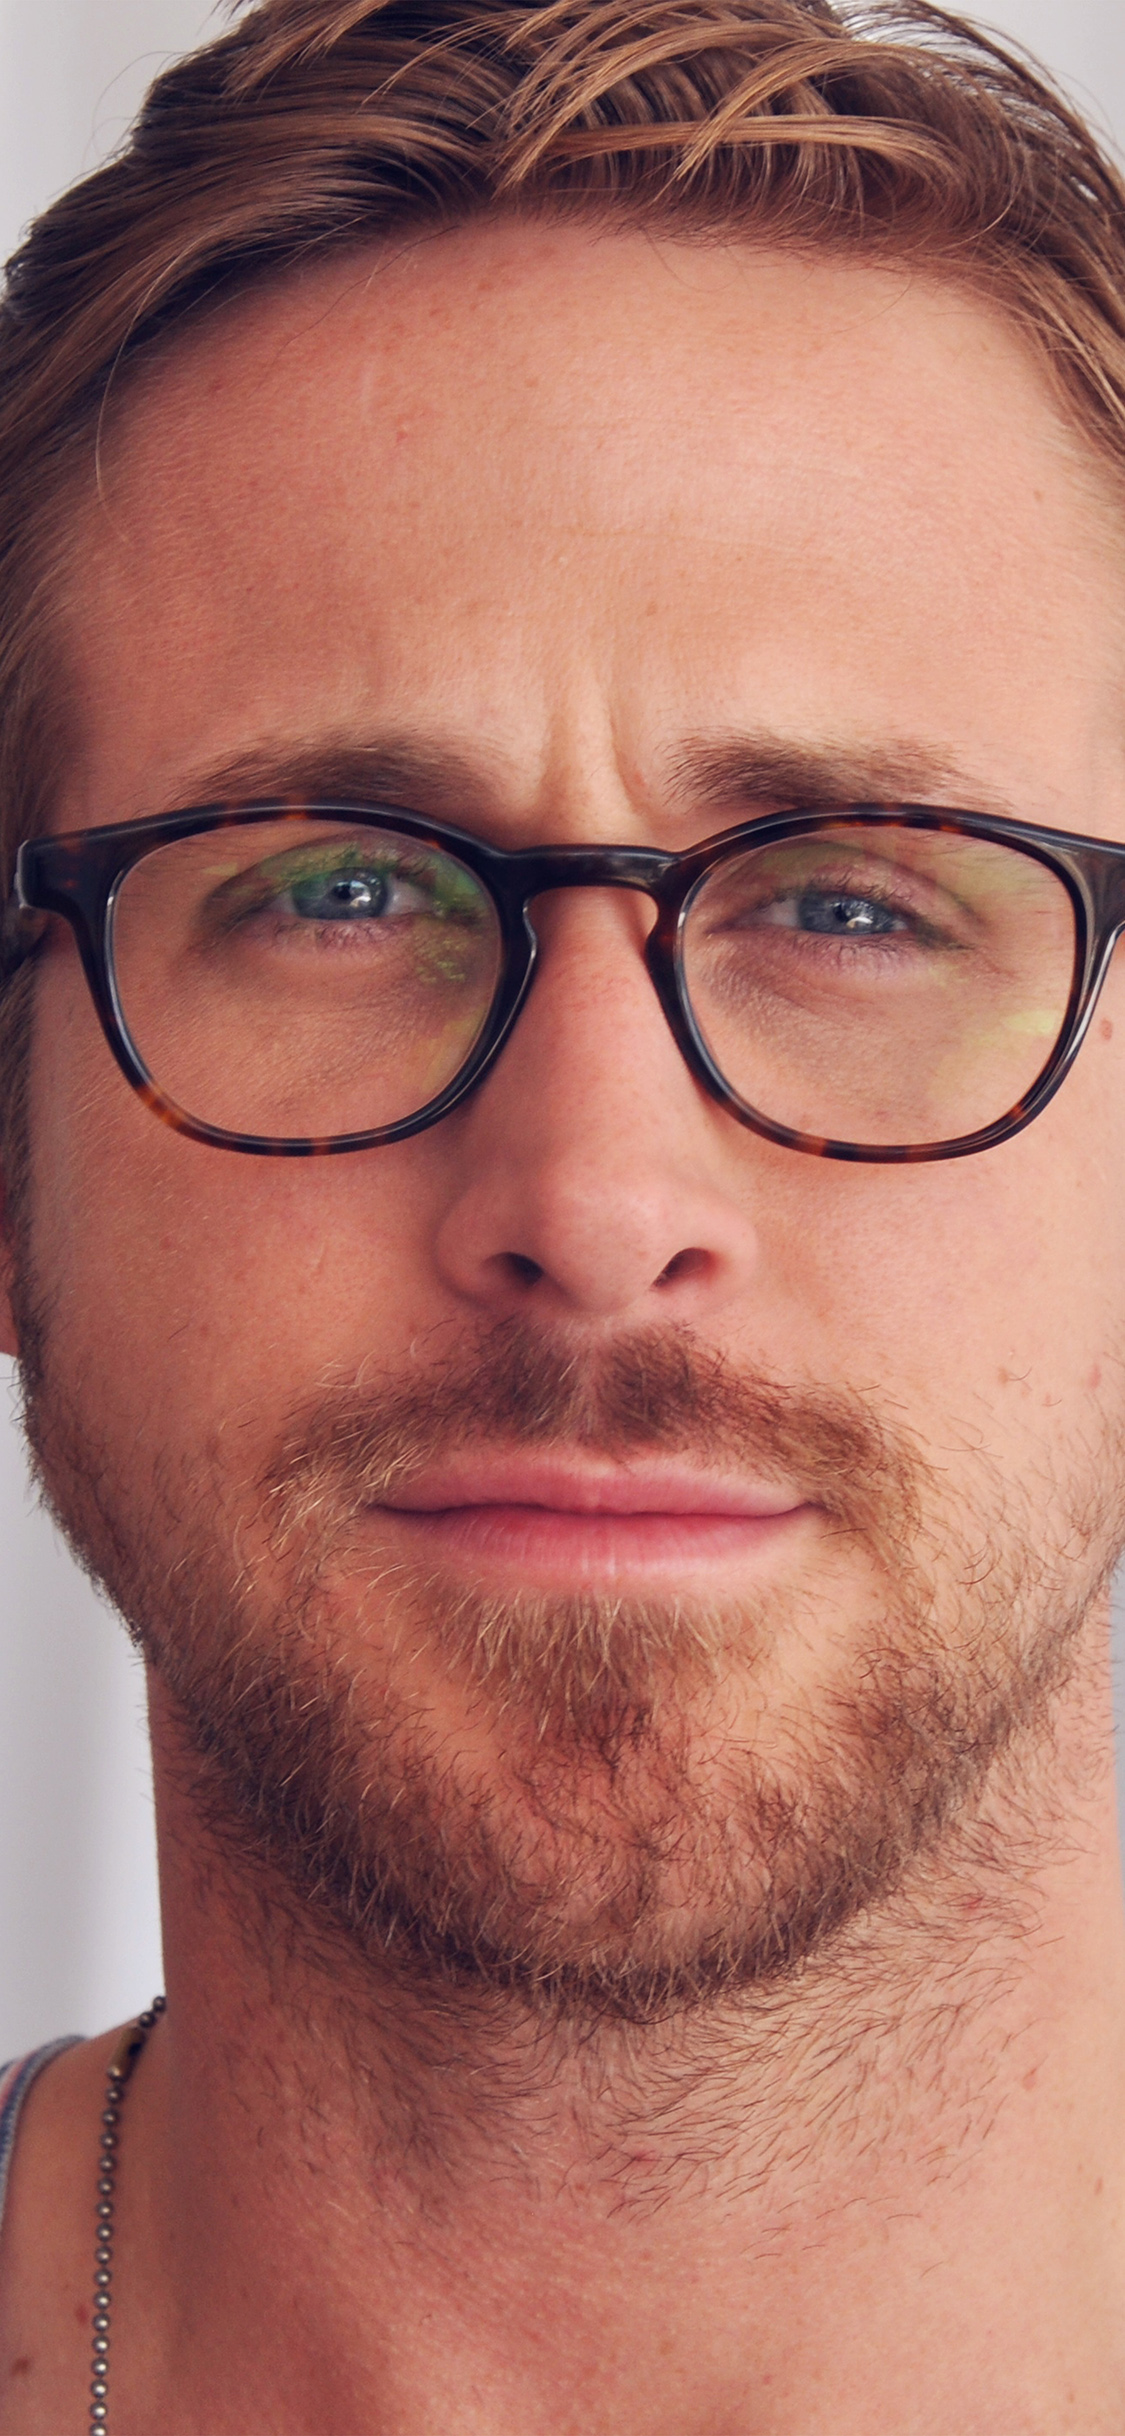 iPhoneXpapers.com-Apple-iPhone-wallpaper-hl39-ryan-gosling-actor-celebrity-lalaland